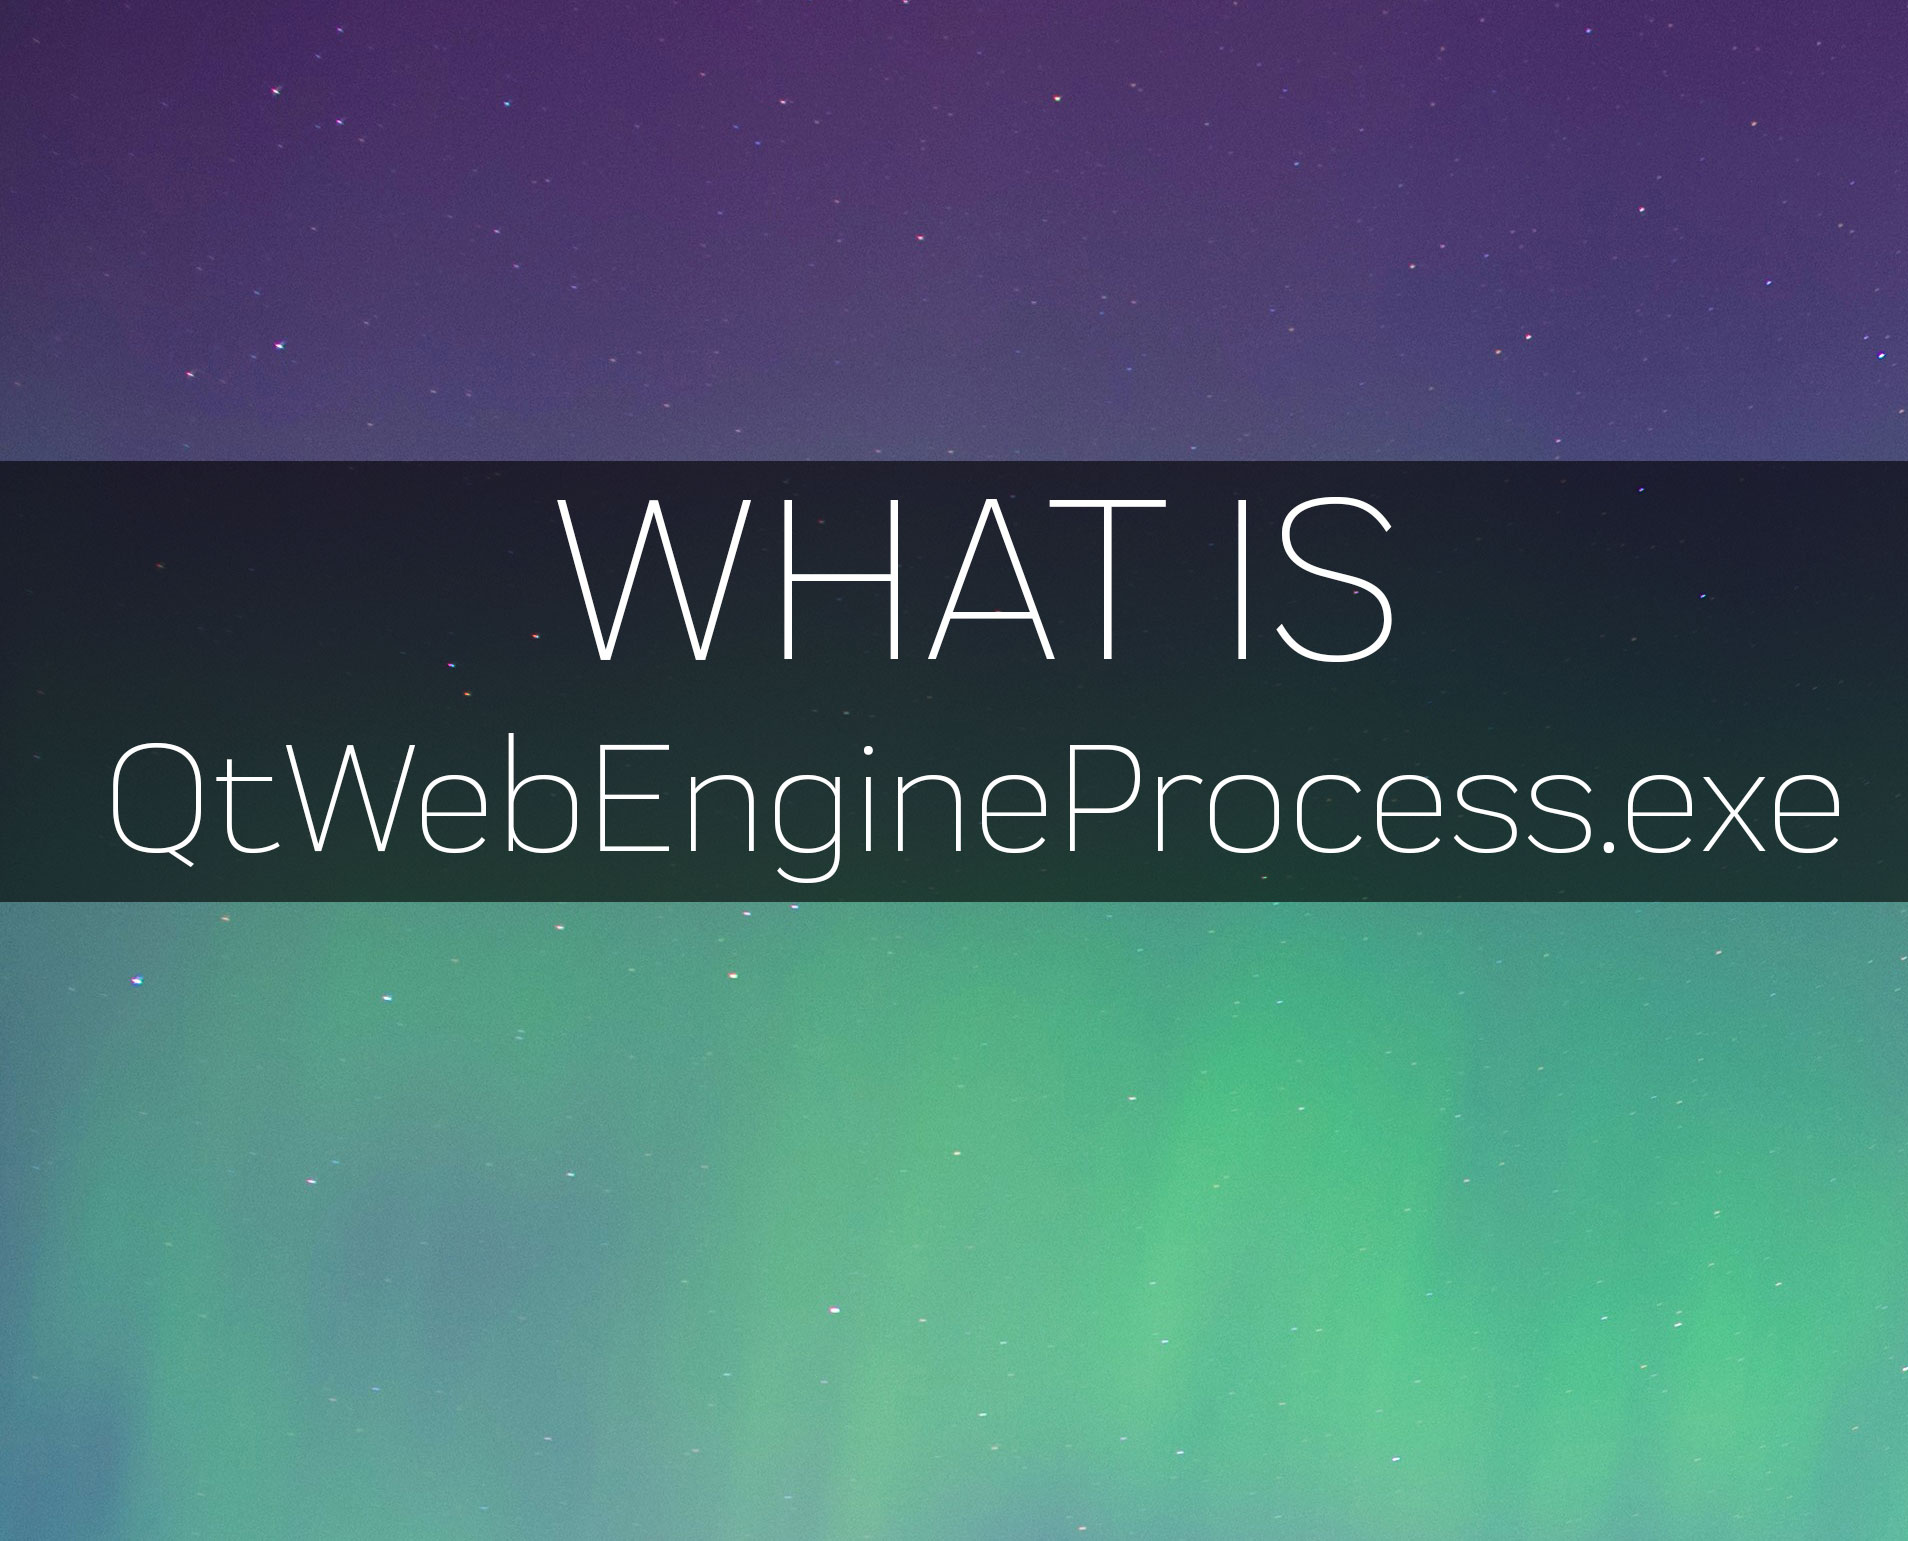 QtWebEngineProcess.exe Process File - WHAT IS IT?